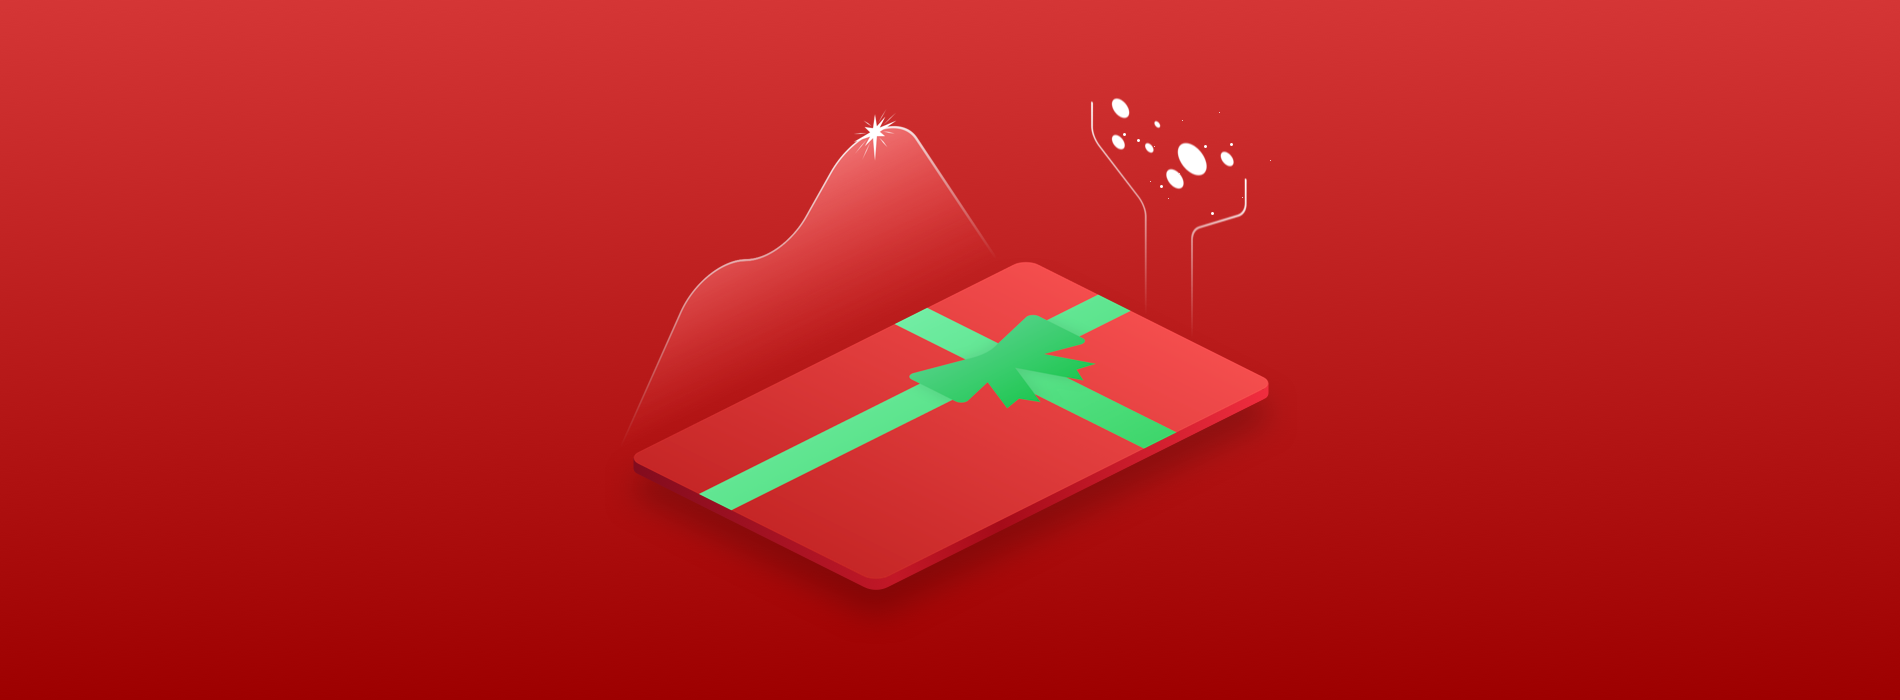 Five Tactics for Increasing Conversions over the Christmas Season